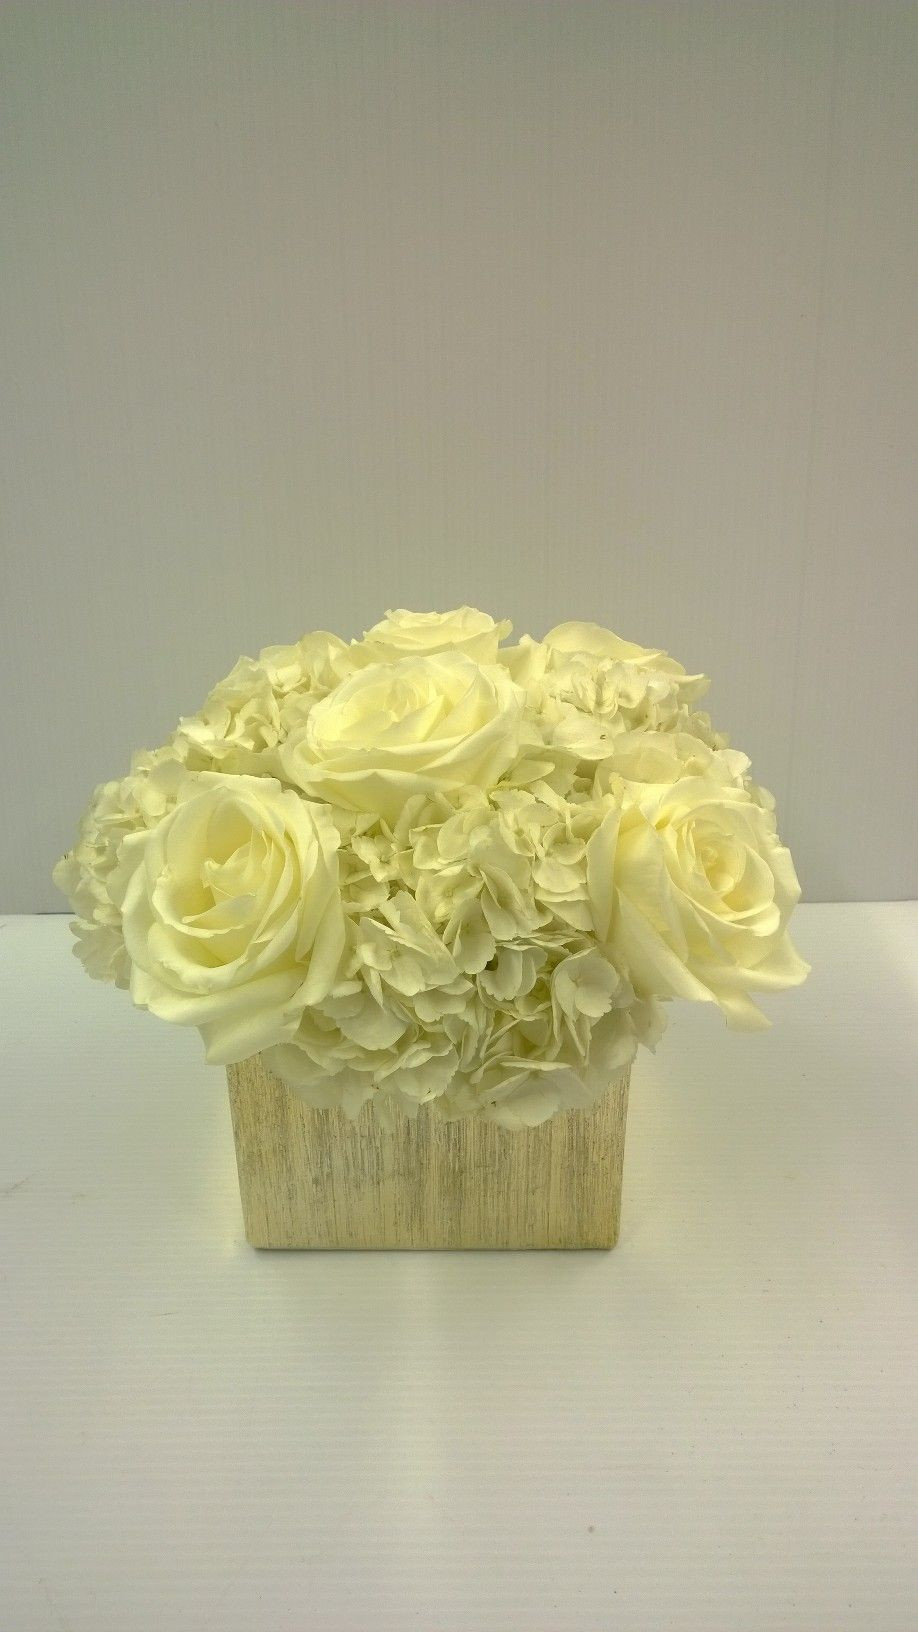 ceramic cube vase of gold vase centerpiece gold ceramic cube with 3 white hydrangeas within gold vase centerpiece gold ceramic cube with 3 white hydrangeas and 6 white open roses